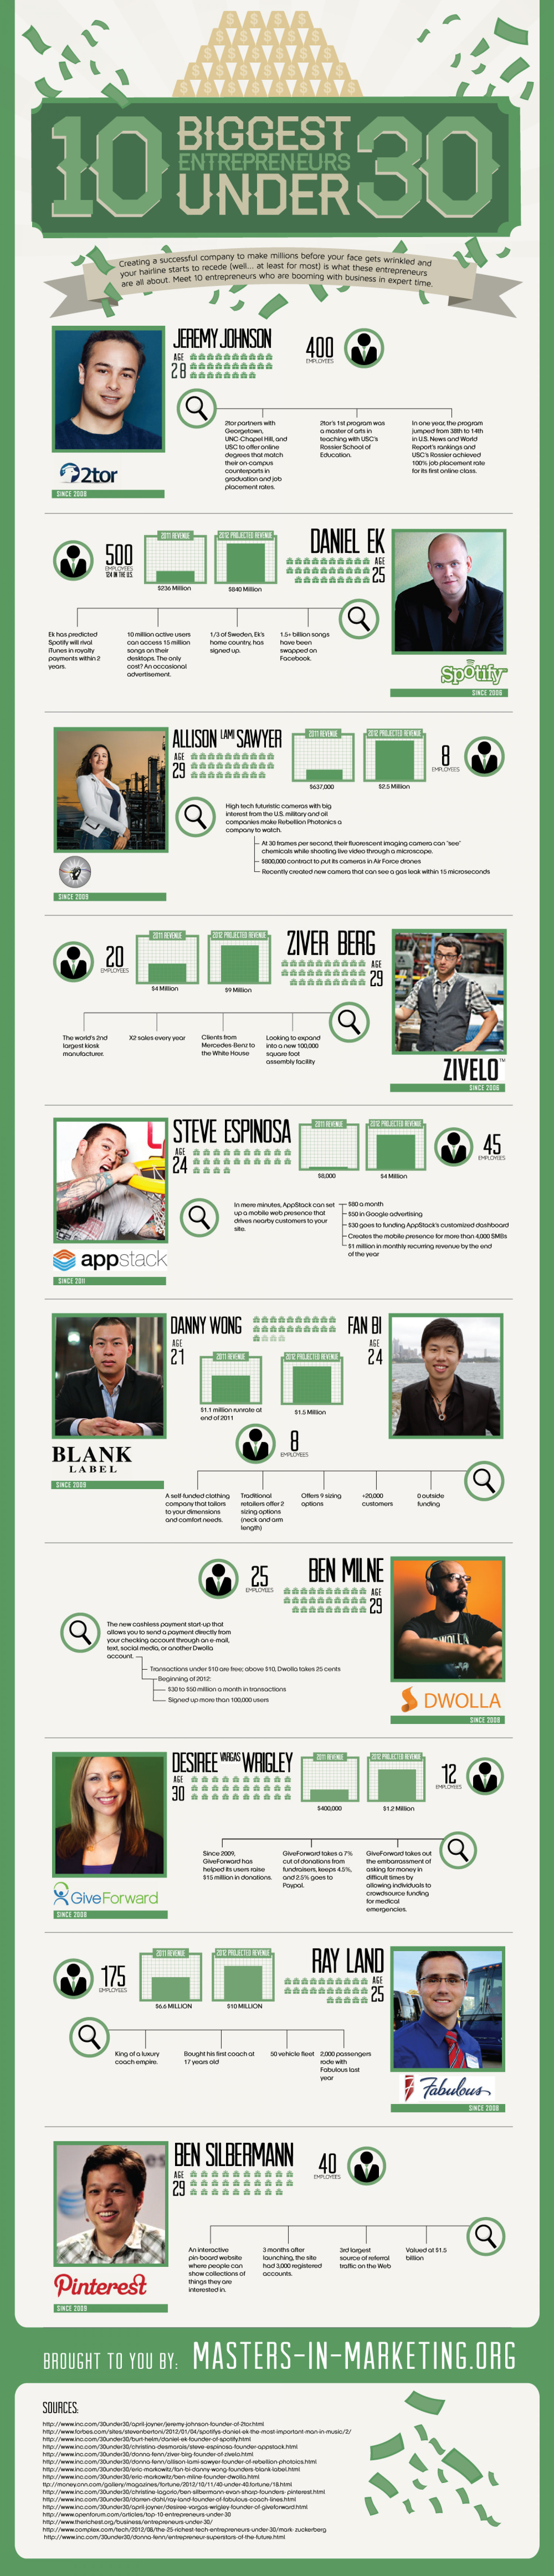 10 Biggest Entrepreneurs Under 30 Infographic